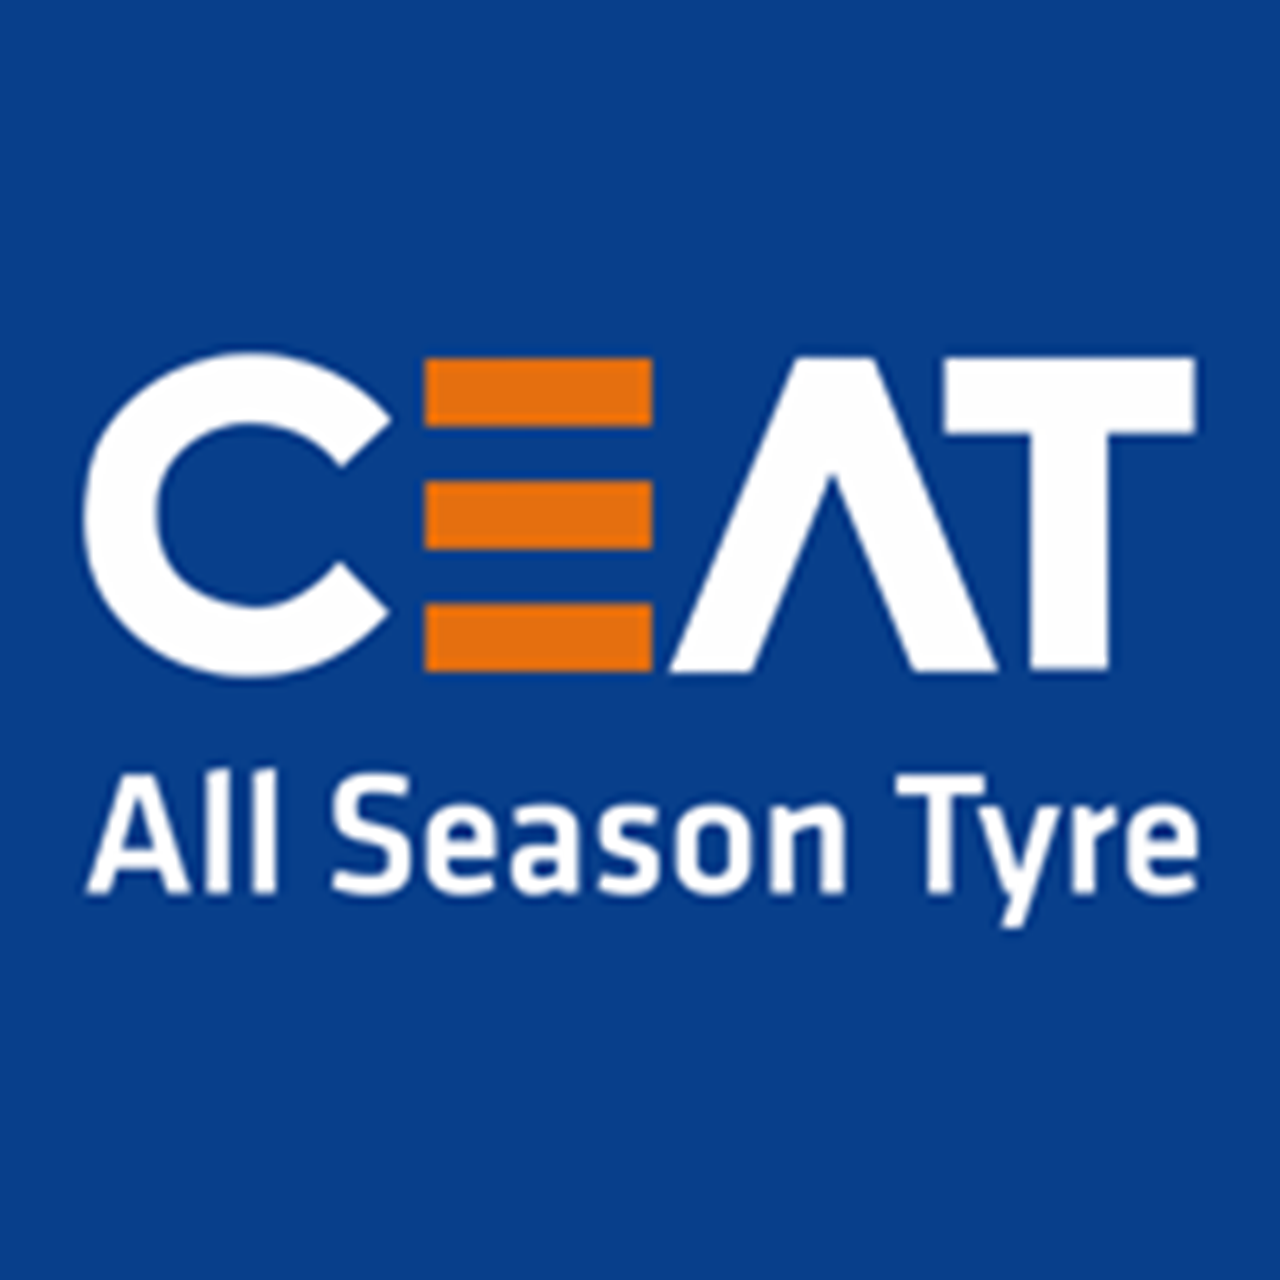 Ceat to set up manufacturing facility in Chennai